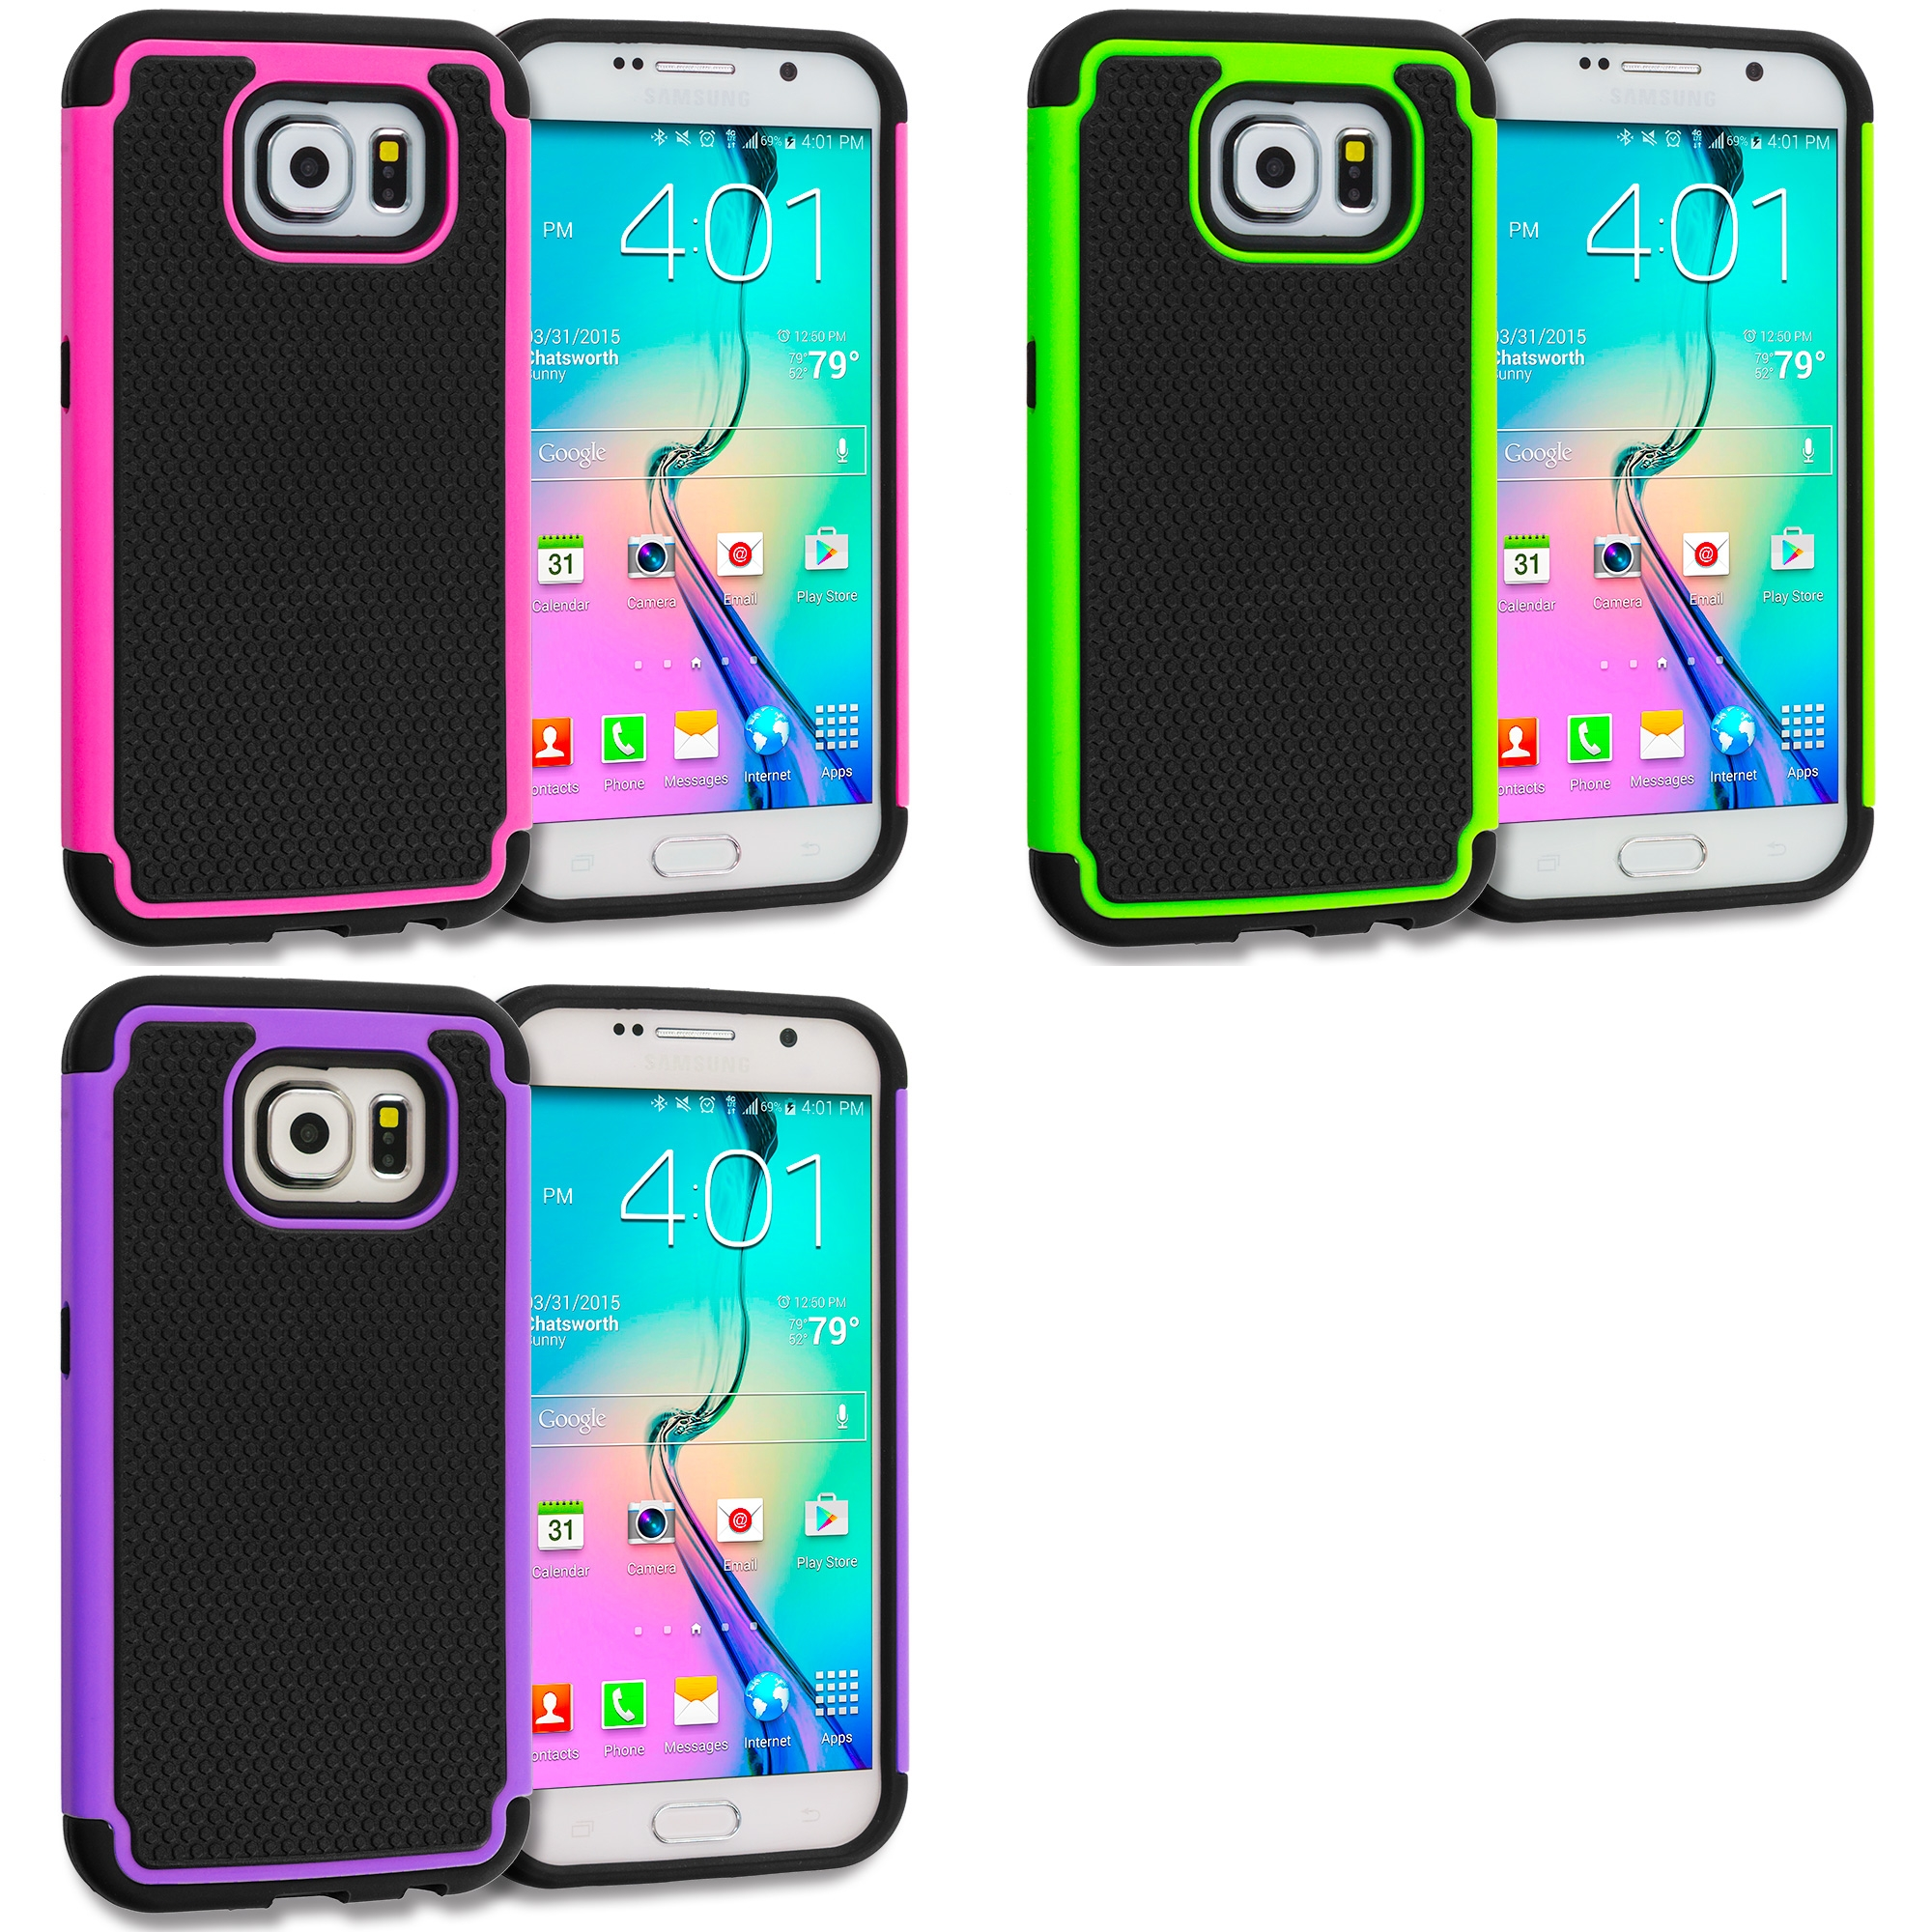 Samsung Galaxy S6 Combo Pack : Black / Hot Pink Hybrid Rugged Grip Shockproof Case Cover